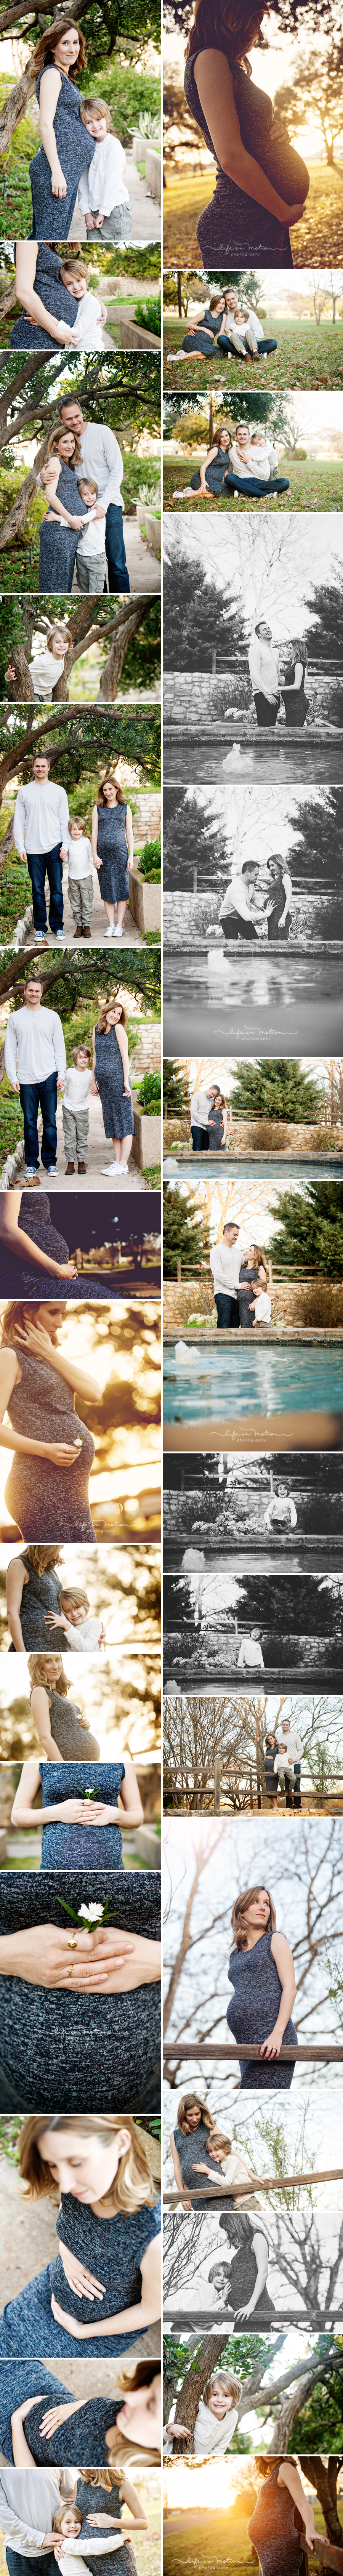 pregnancy maternity photographers in austin